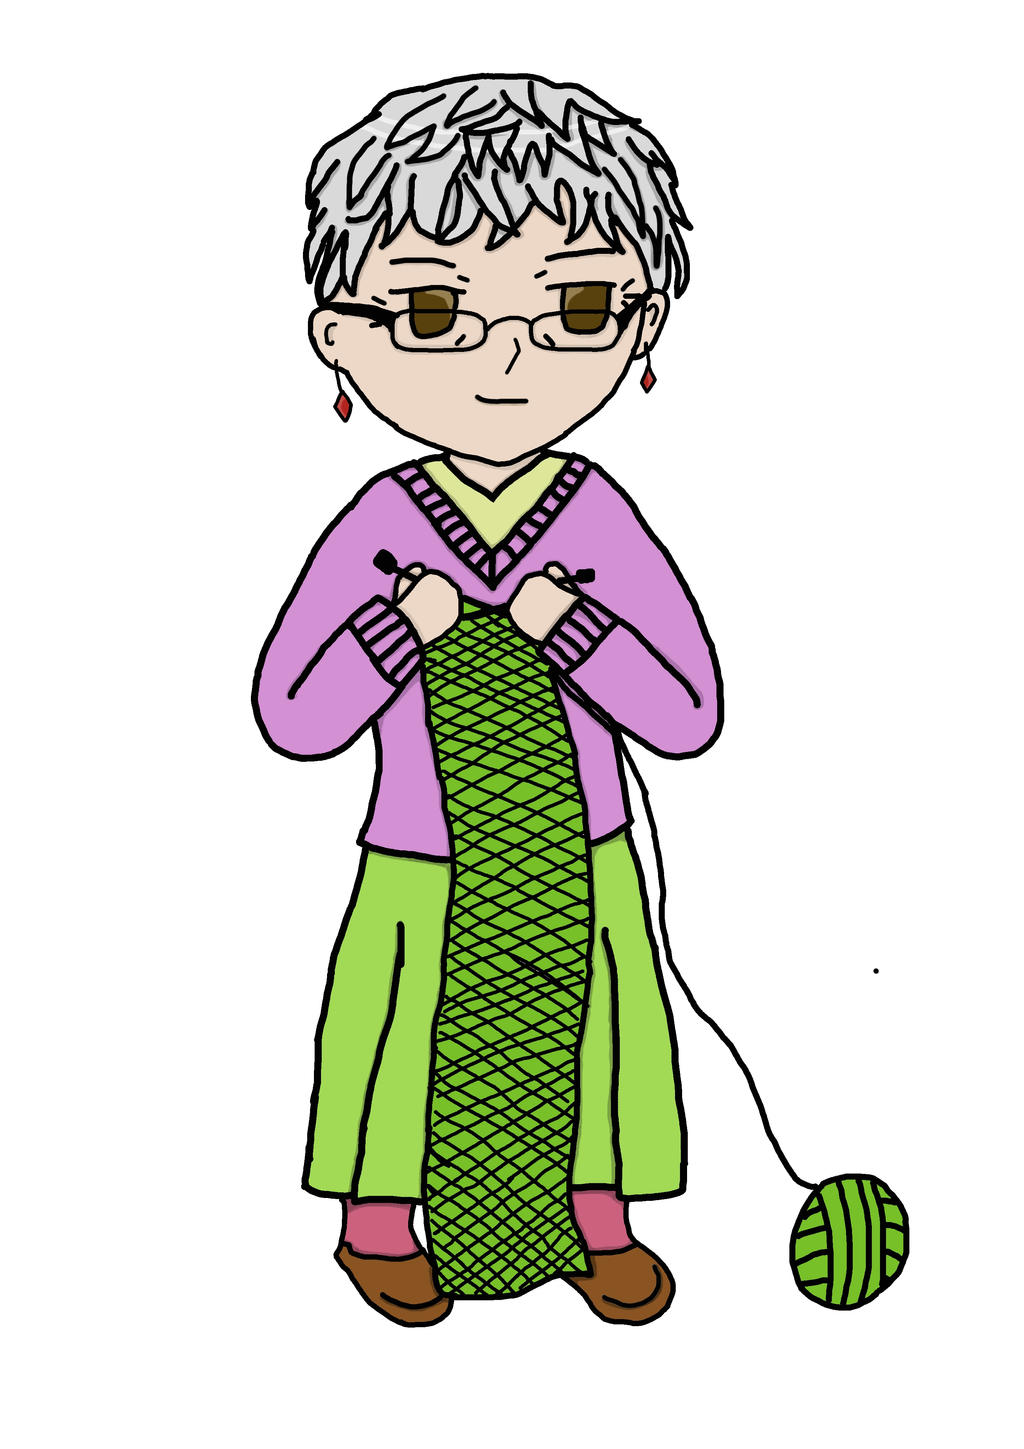 Grandma Knitting Spaghetti : Chibi grandma knitting by hawkblade on deviantart